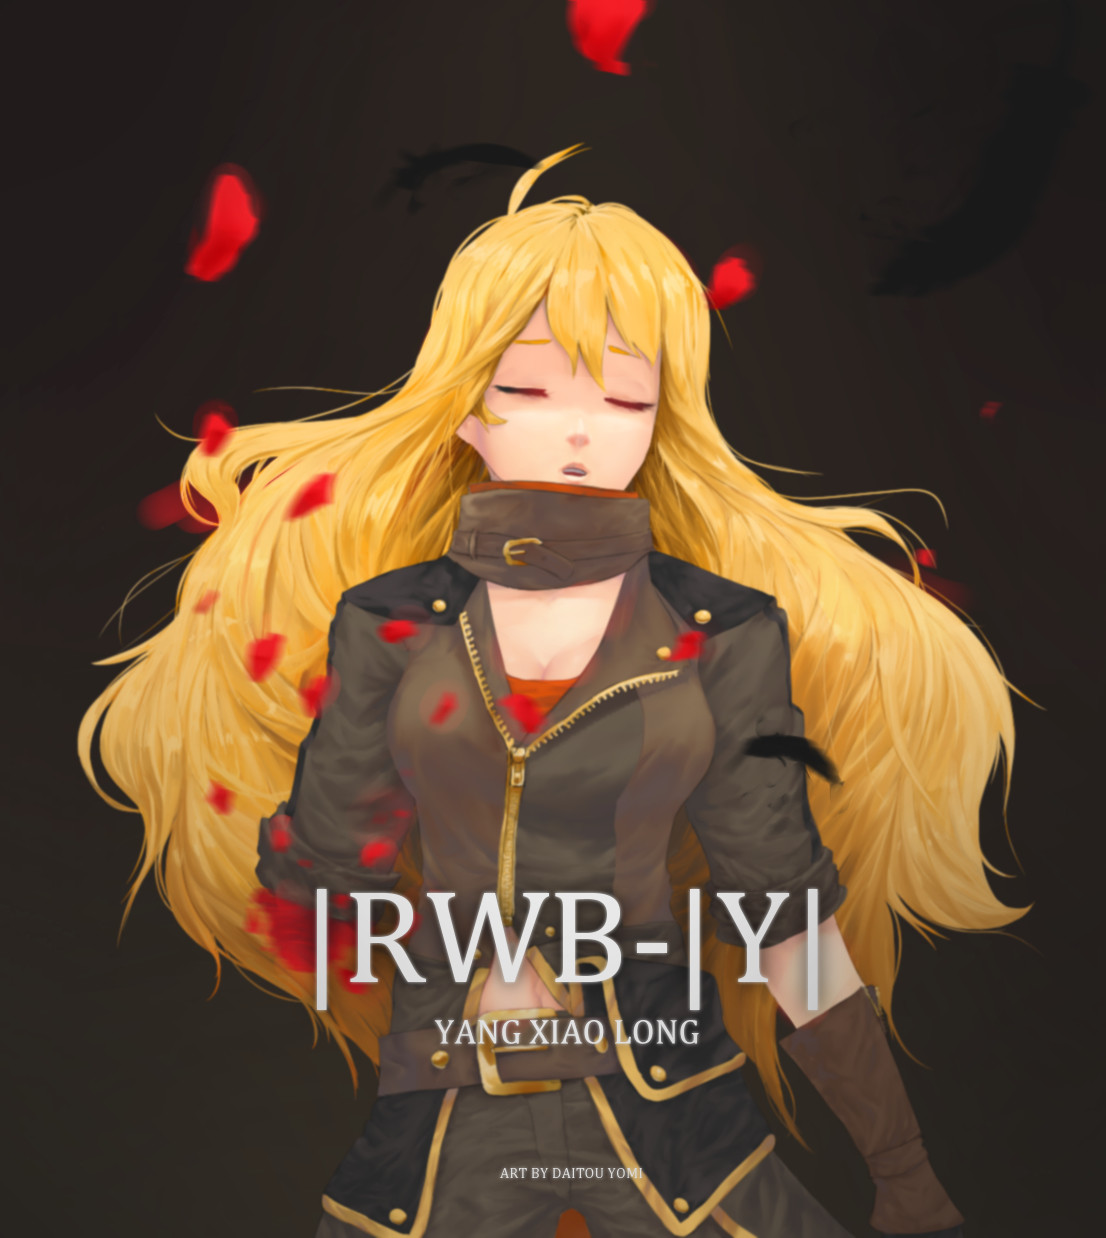 Yang Xiao Long Wallpaper: Rwby Yang Xiao Long Fanart